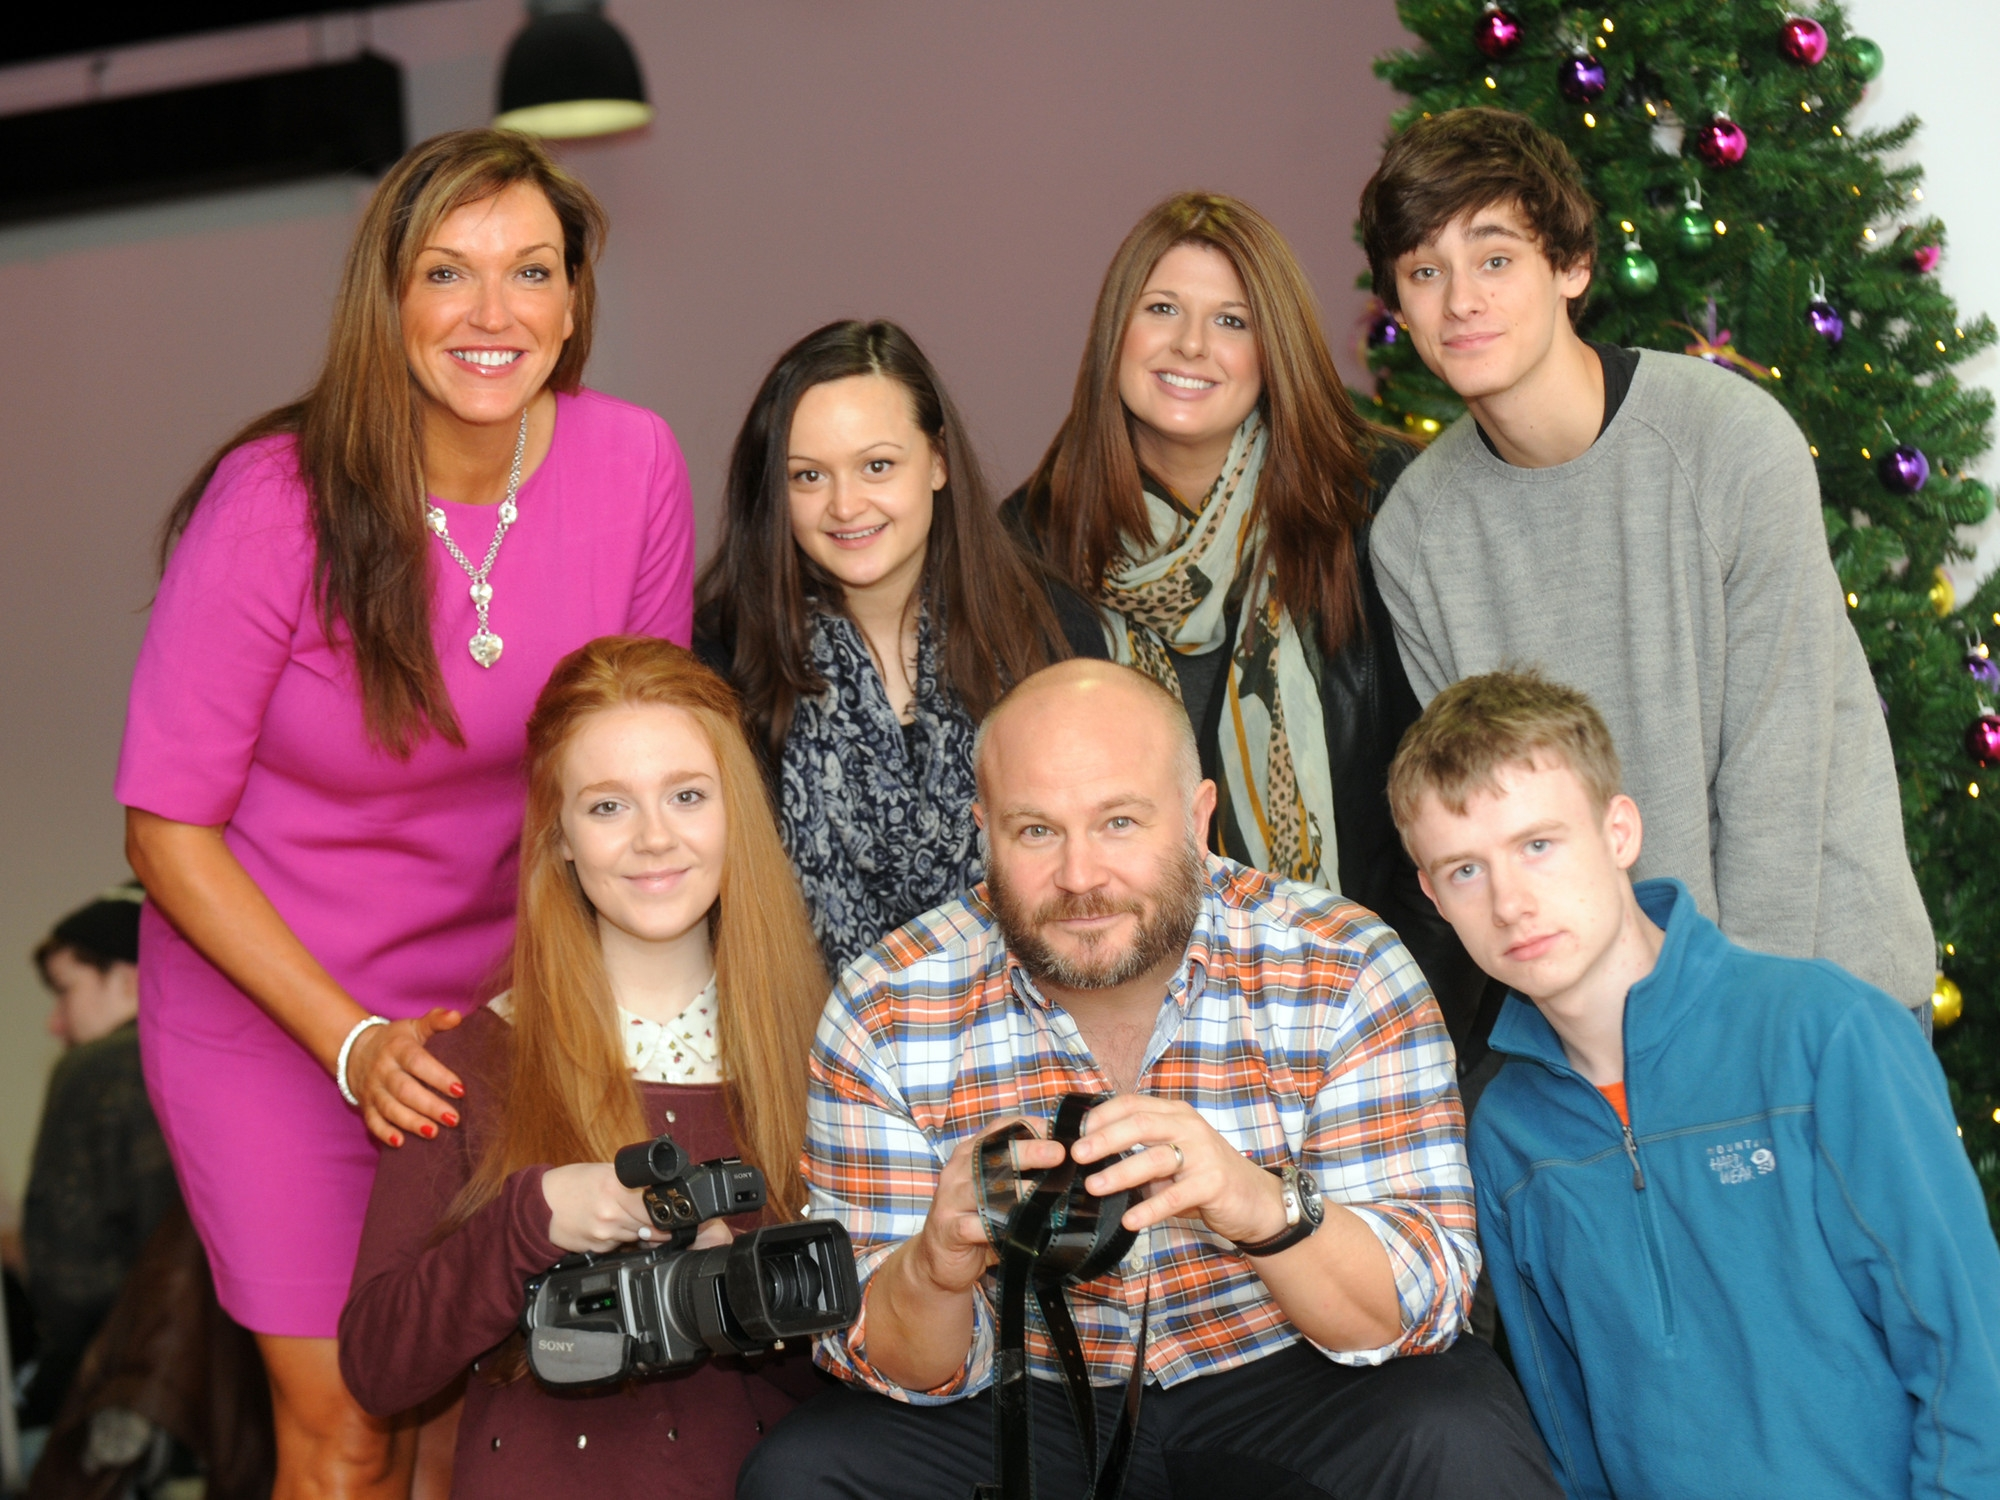 who is behind cinemagic and a christmas star - A Christmas Star